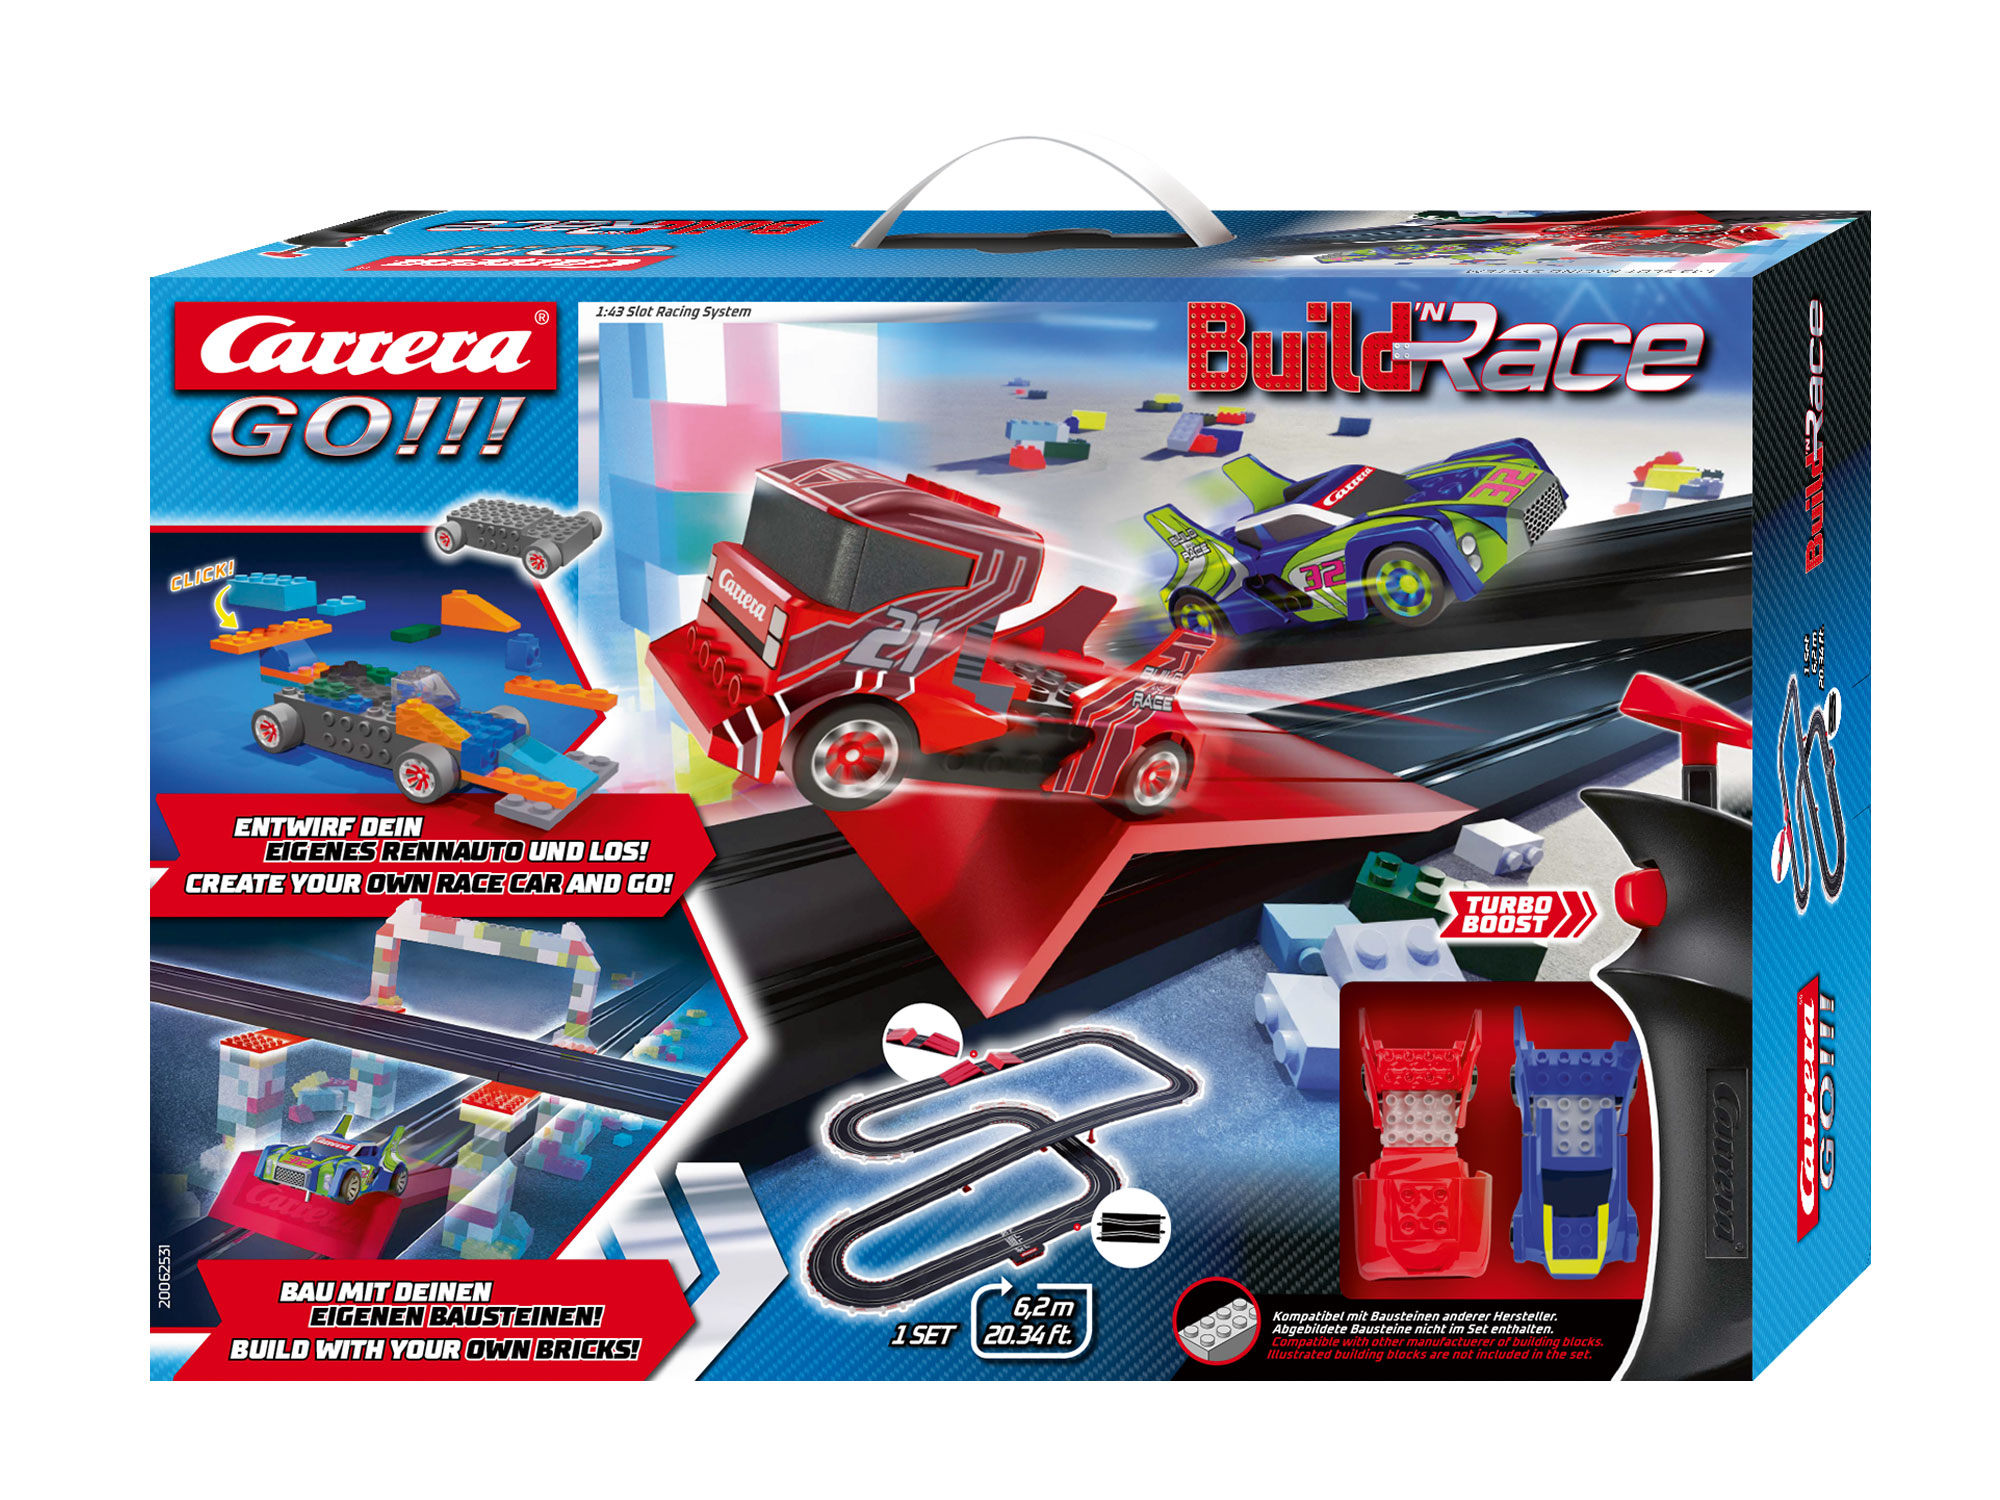 Carrera 62531 GO!!! Build 'N Race - Racing Set 6.2